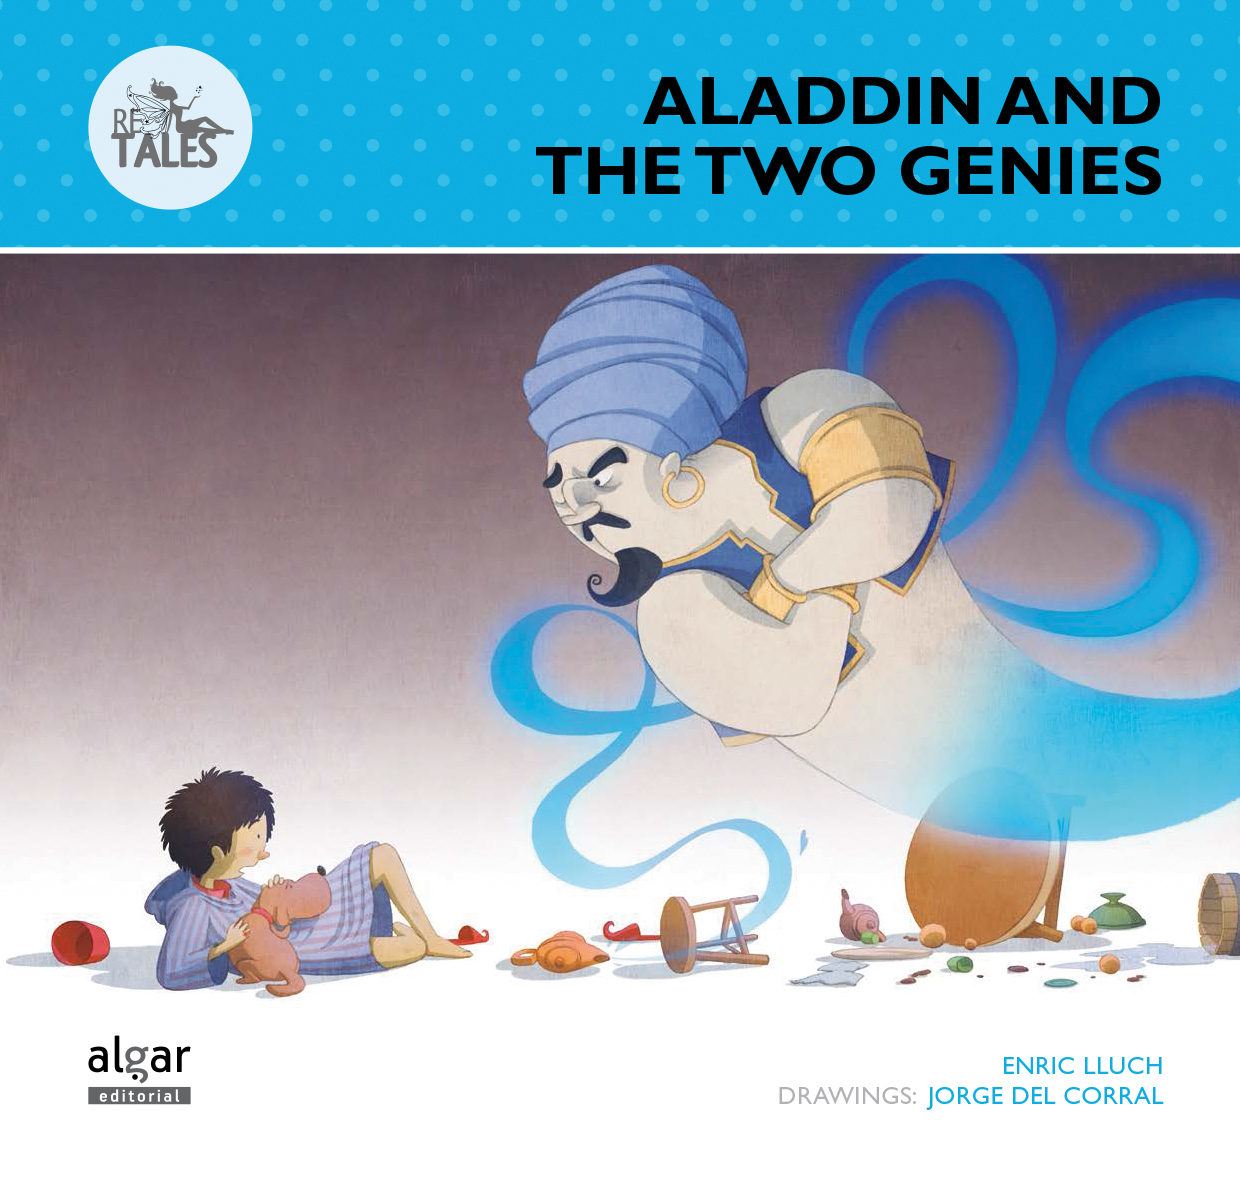 descargar ALADDIN AND THE TWO GENIES pdf, ebook